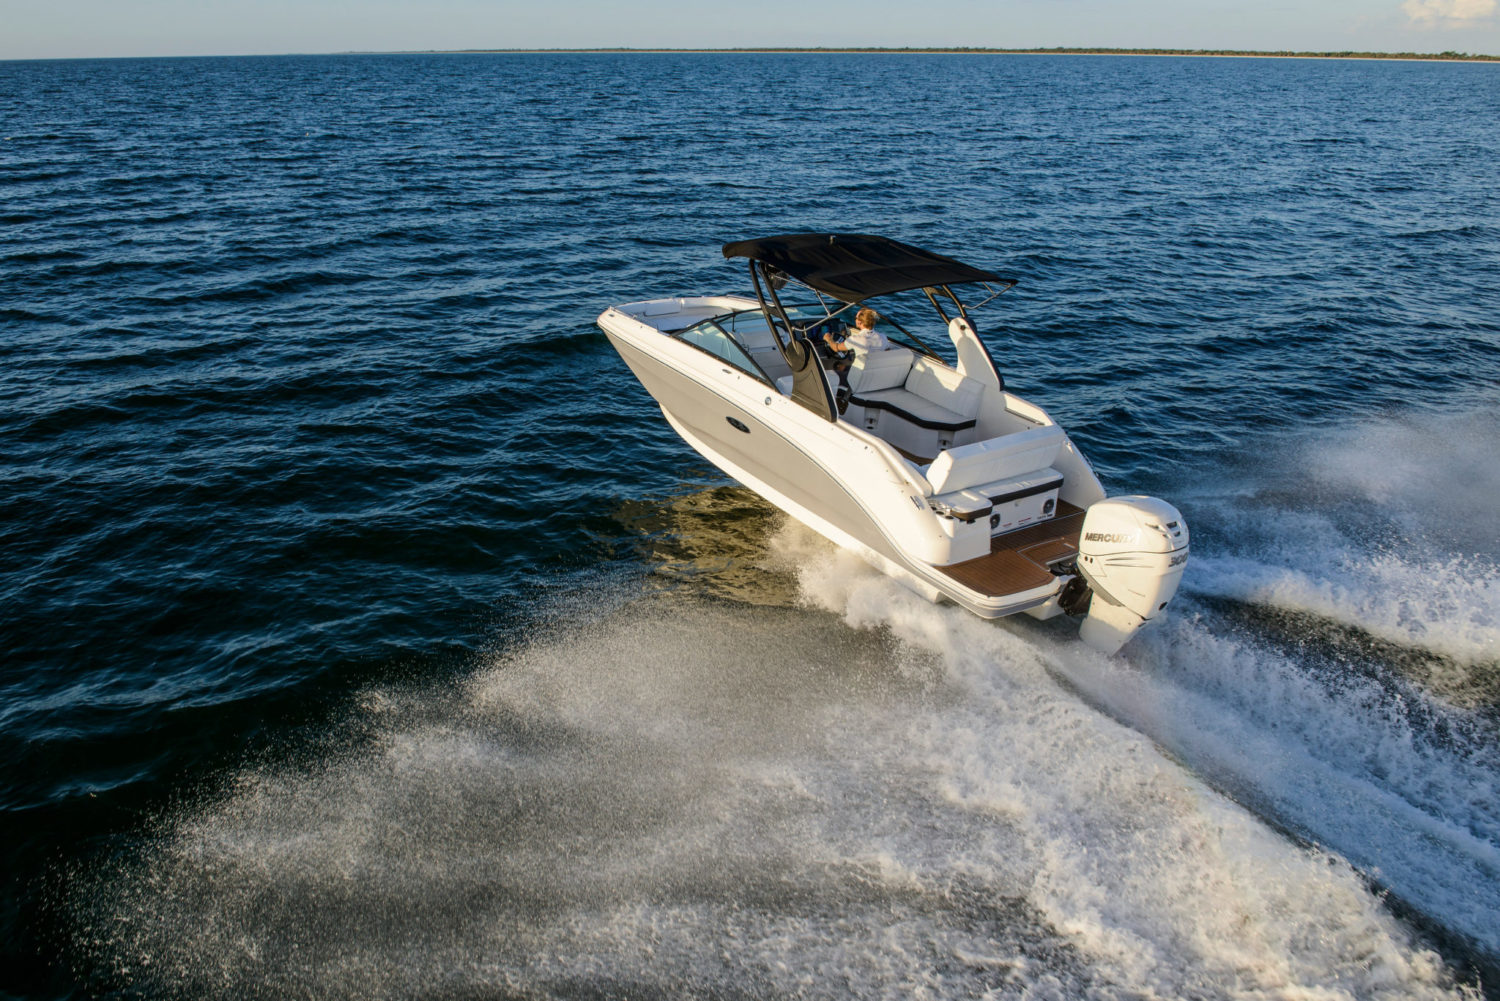 Sea Ray Introduces New SDX 250 and SDX 250 Outboard Models